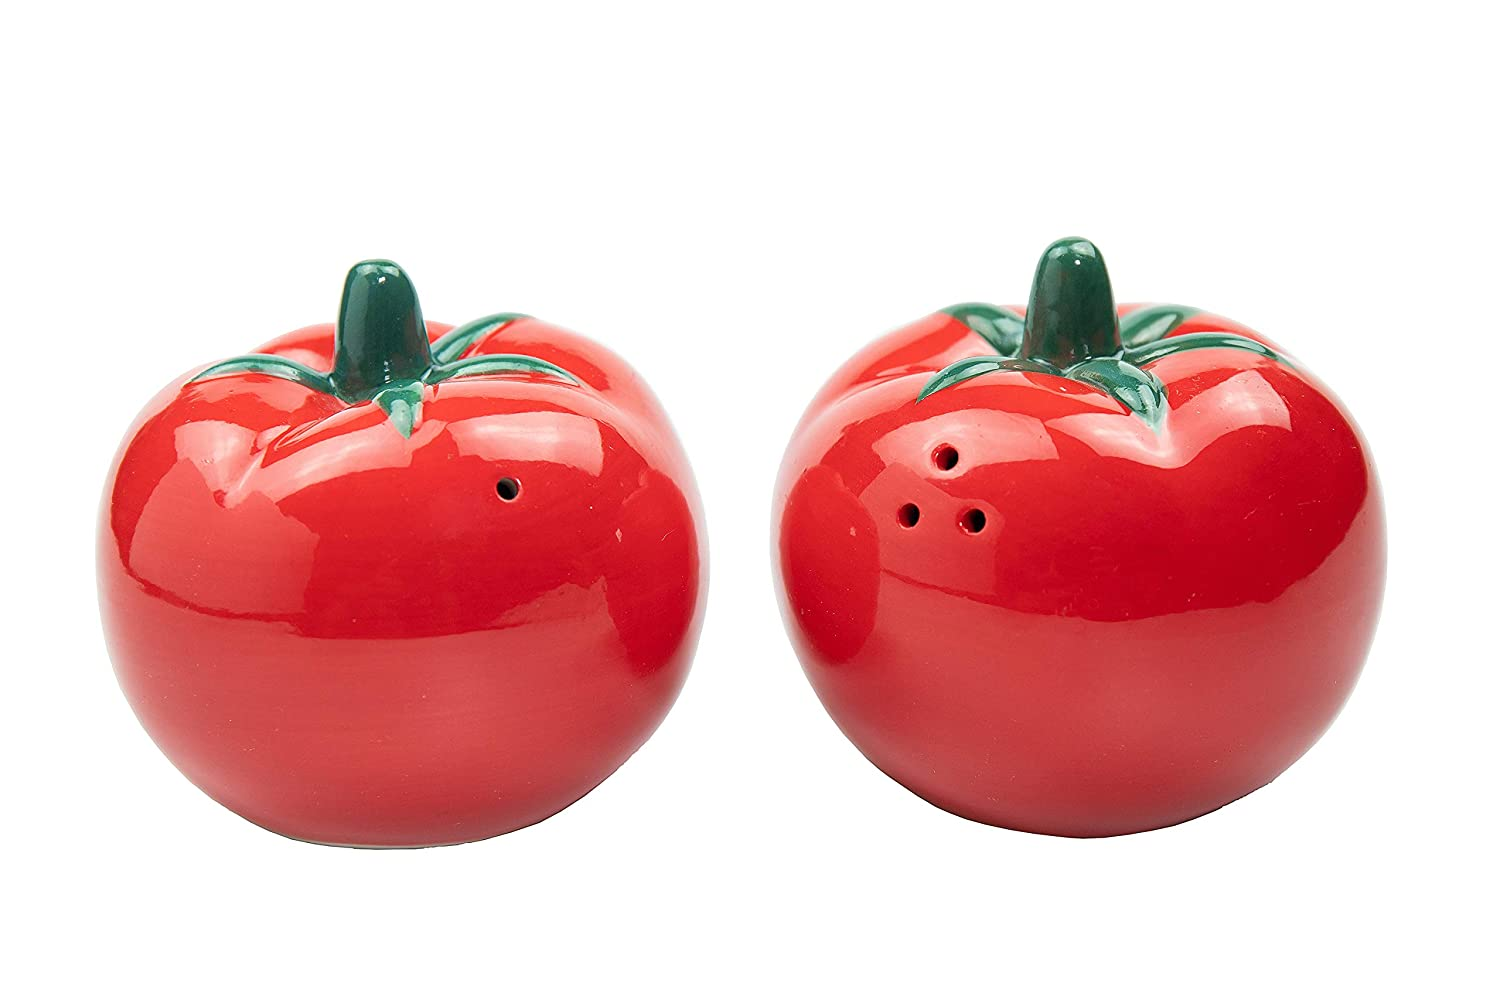 Exquisite Hand paint WD-Cute Red Tomato Shaped Ceramic Salt and Pepper Shaker Set Dai 3inch Gifts for Kitchen Thailand